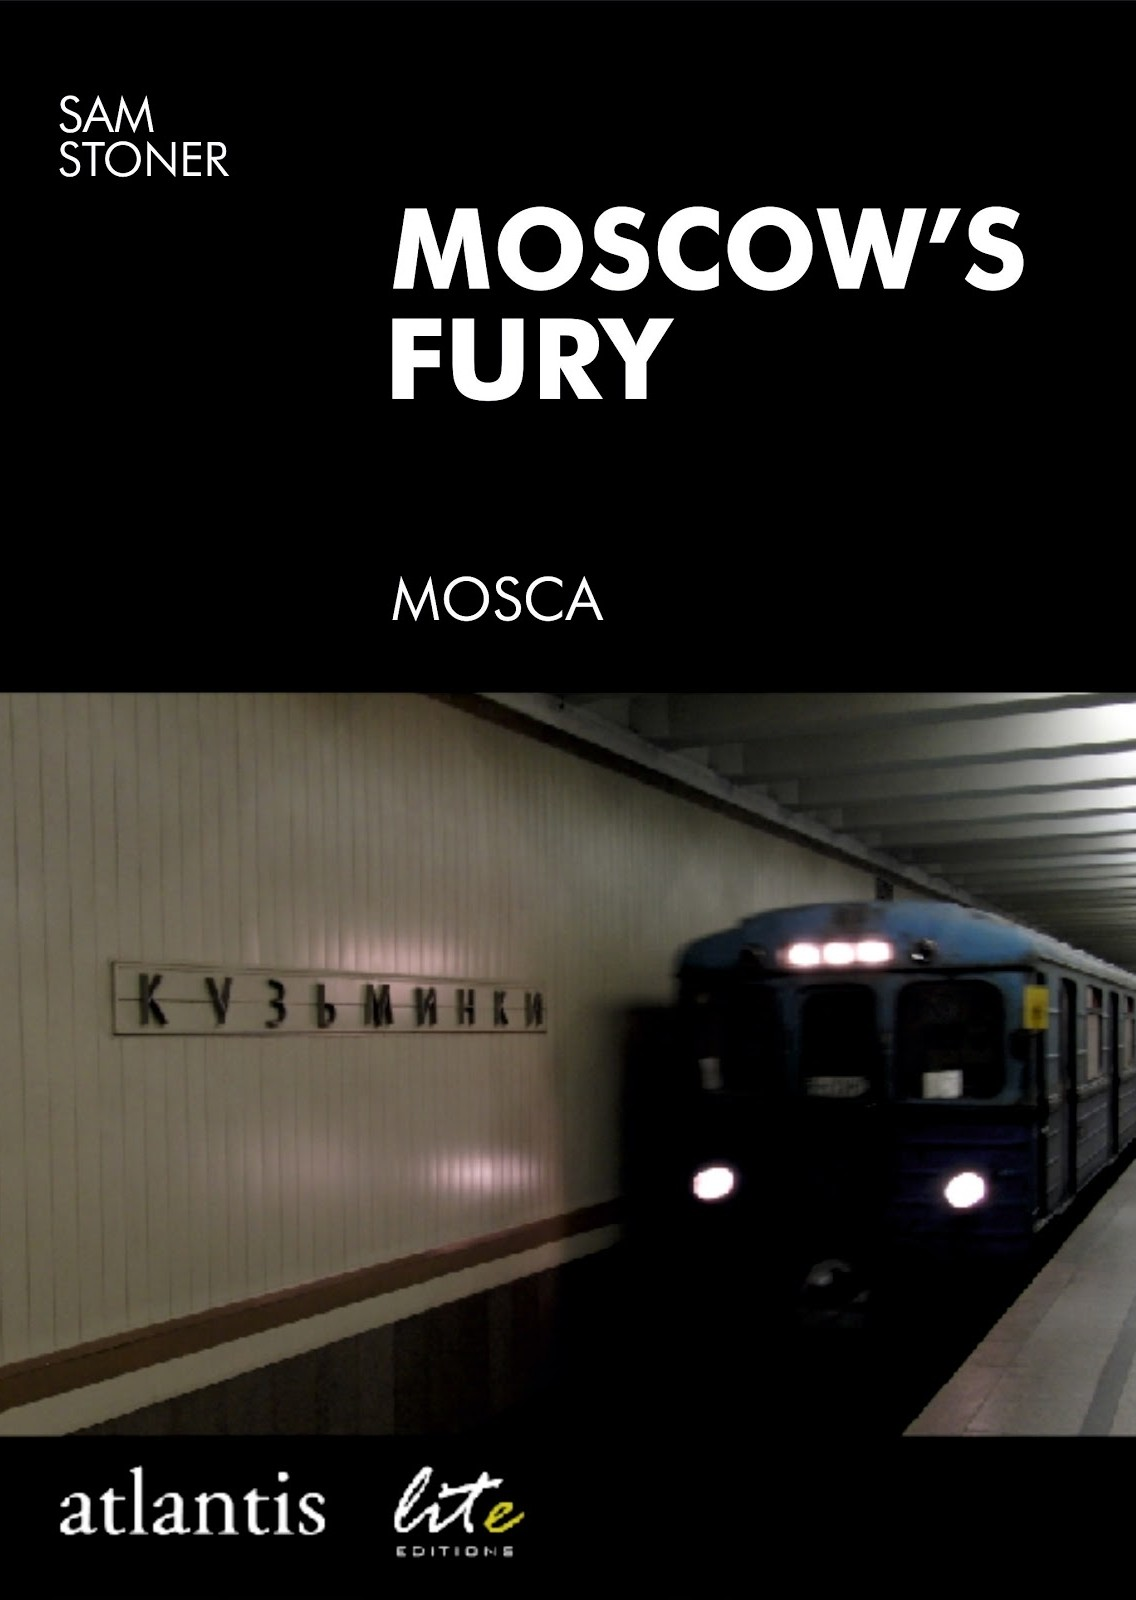 Moscow's Fury di Sam Stoner